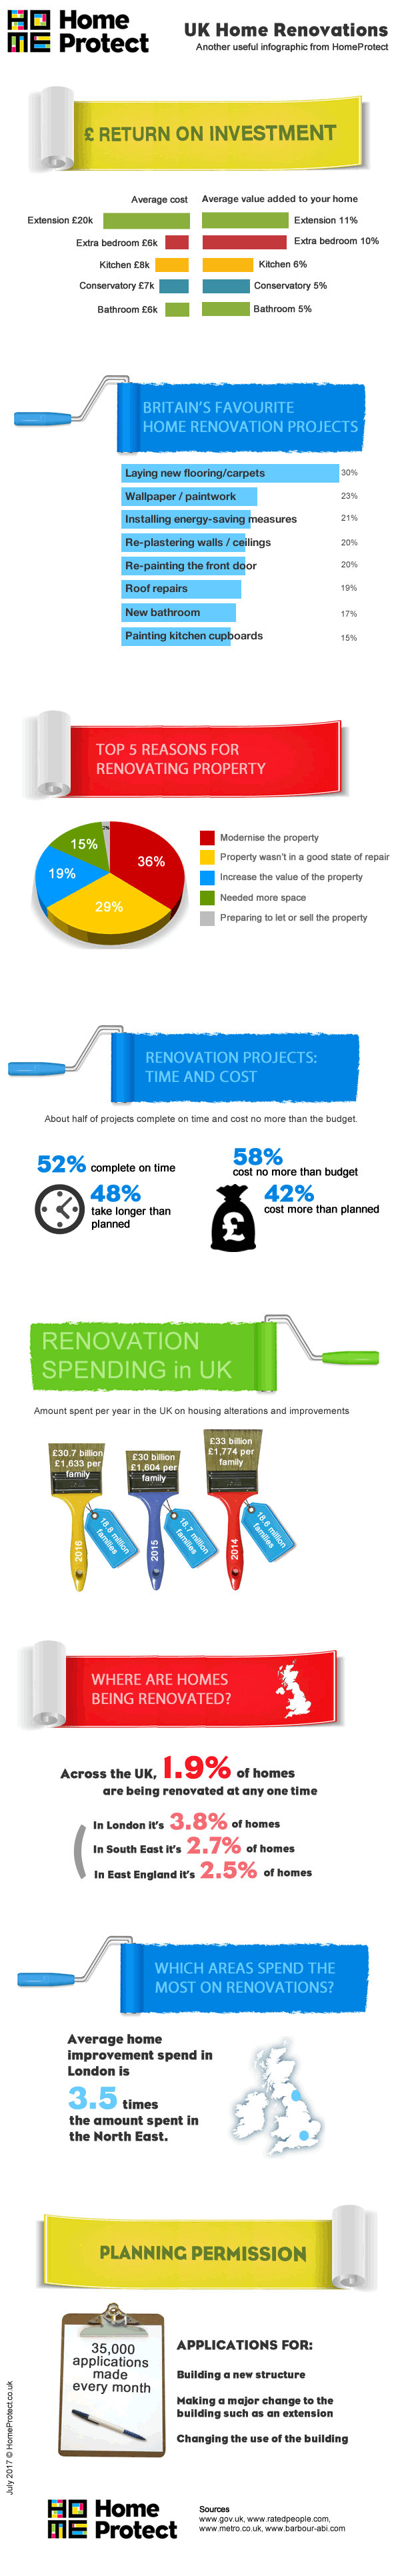 Home renovations in the UK 2017